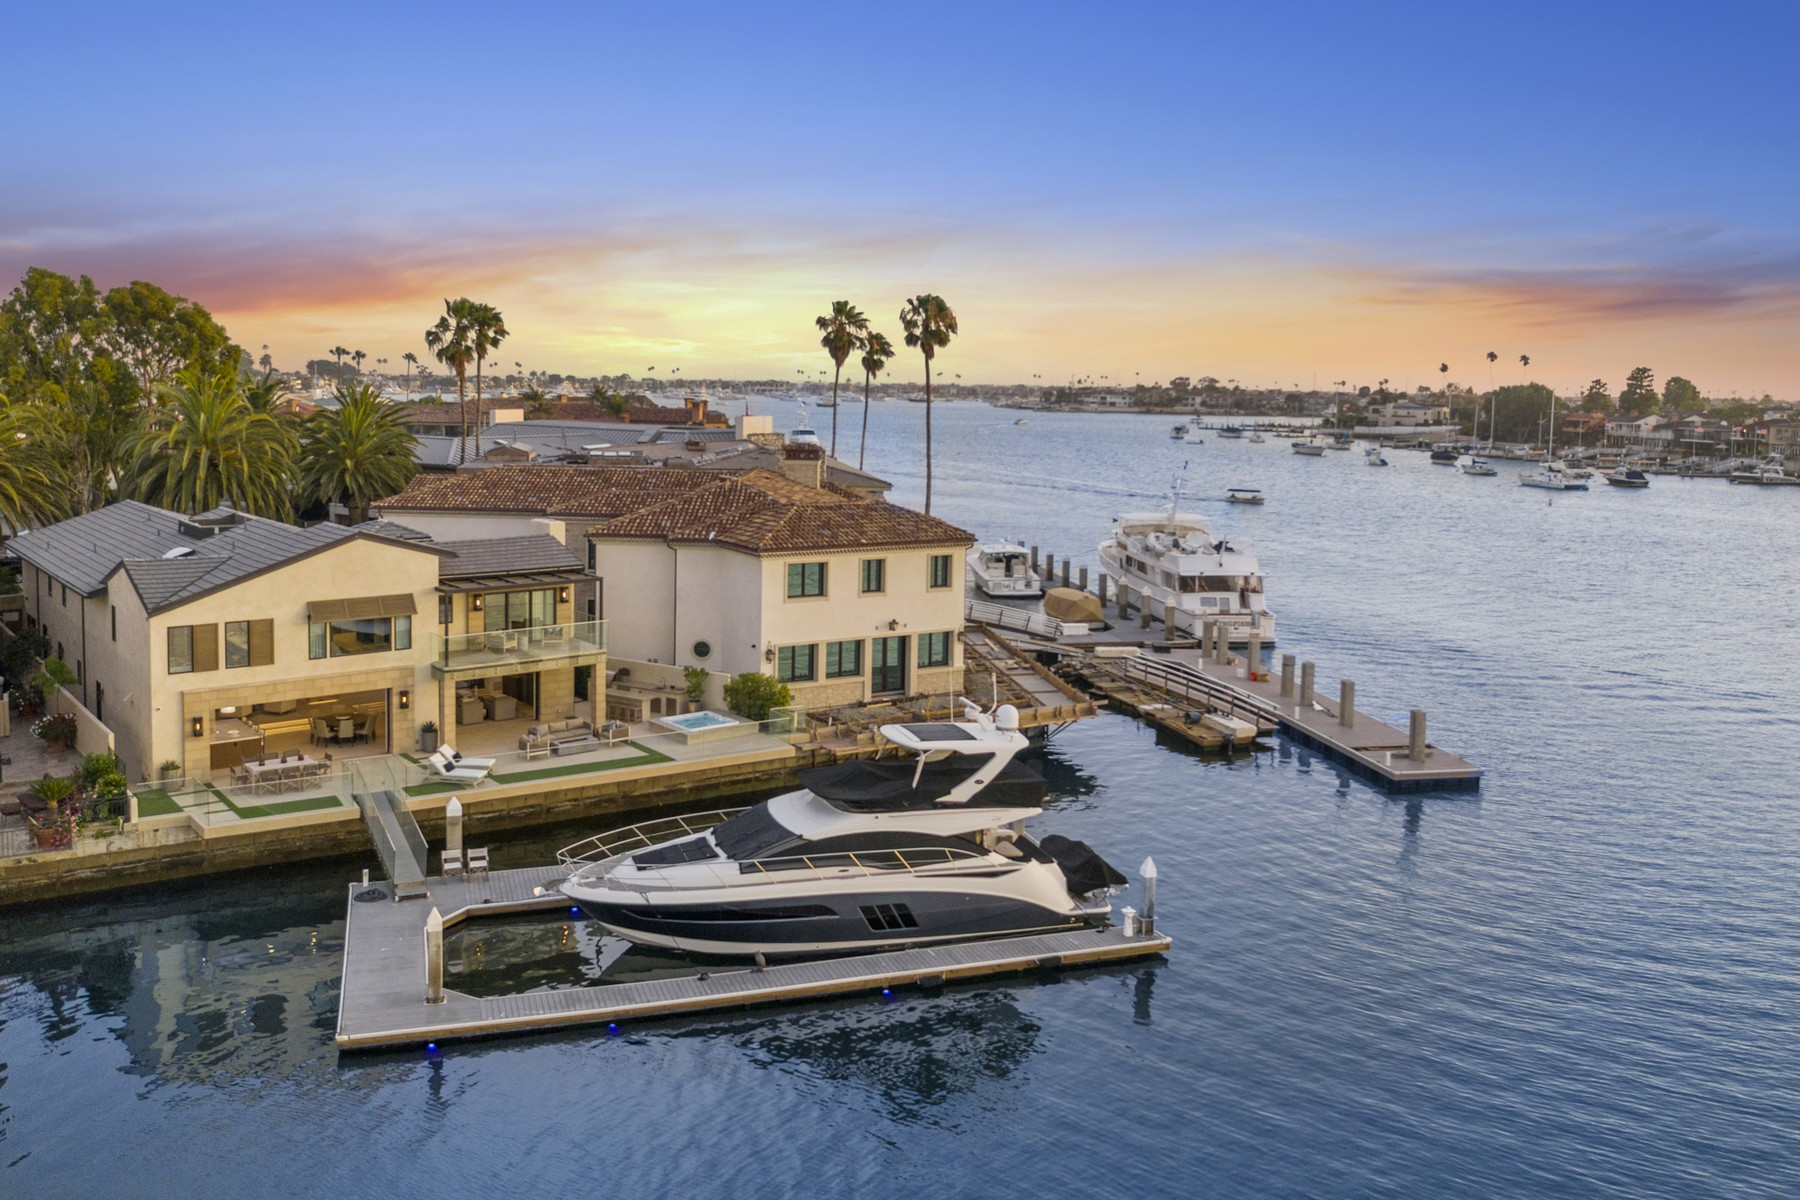 Single Family Homes for Sale at 89 Linda Isle Newport Beach, California 92660 United States